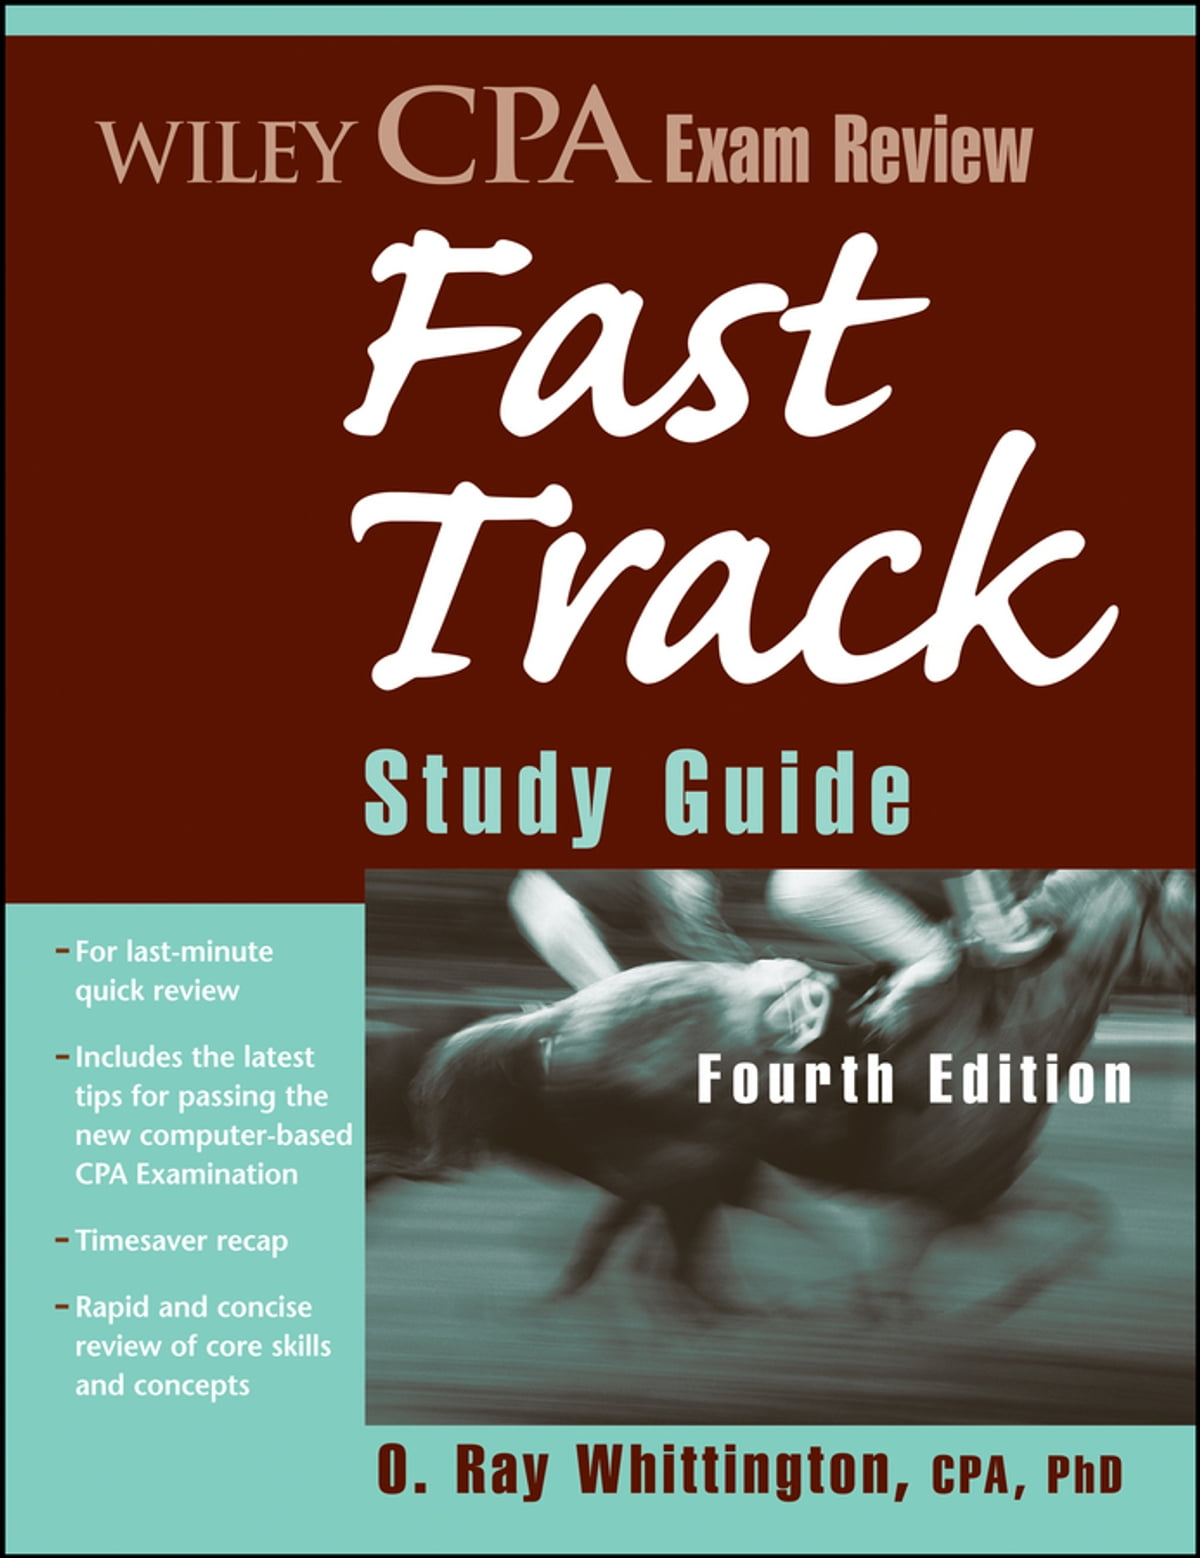 Wiley CPA Exam Review Fast Track Study Guide eBook by O. Ray Whittington -  9780470428658 | Rakuten Kobo